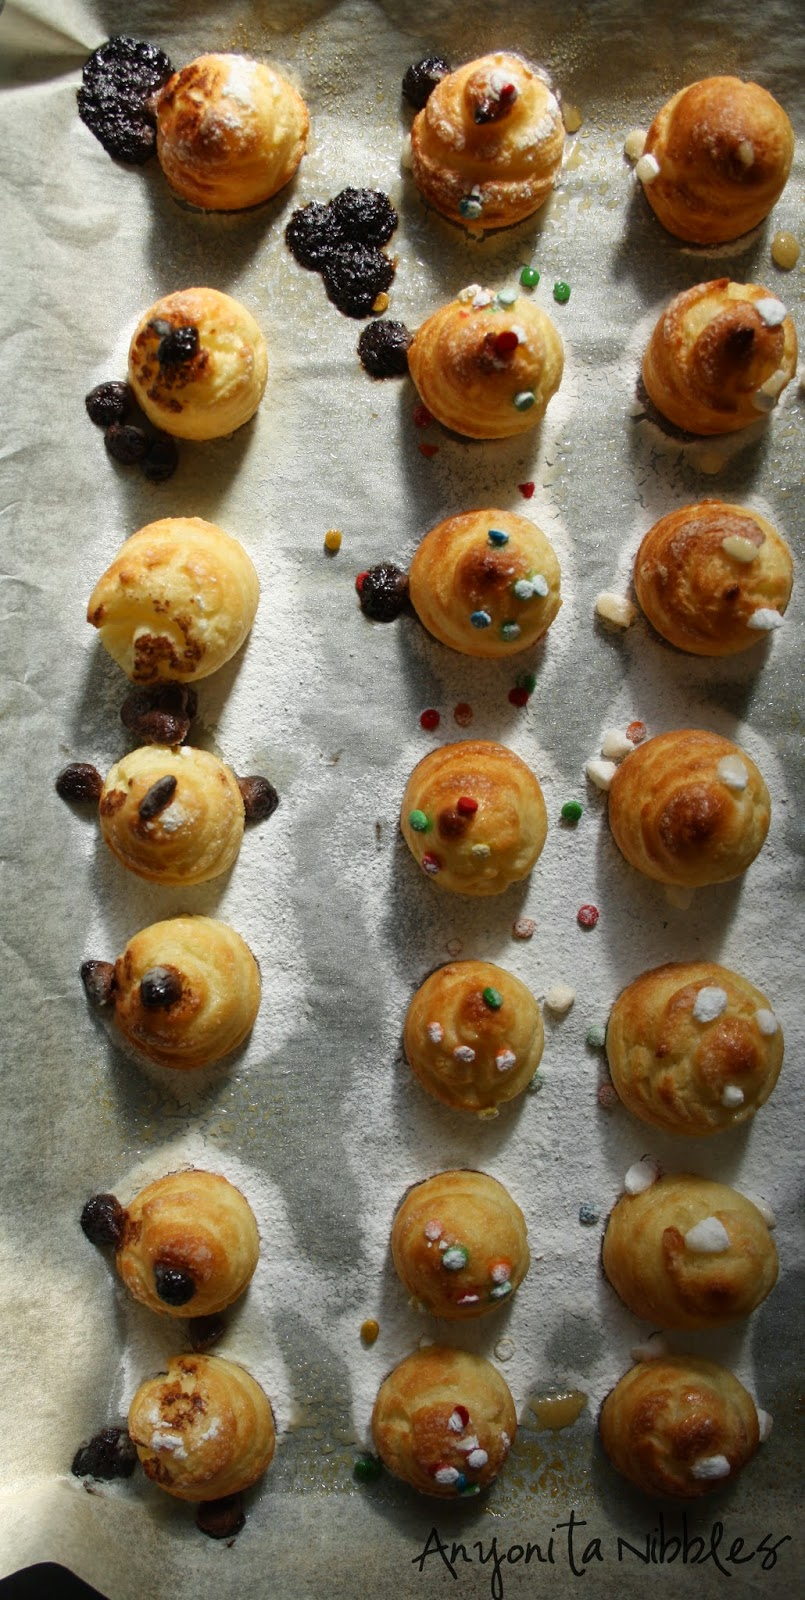 You can get stunning results from making your own gluten free pate a choux. From Anyonita Nibbles